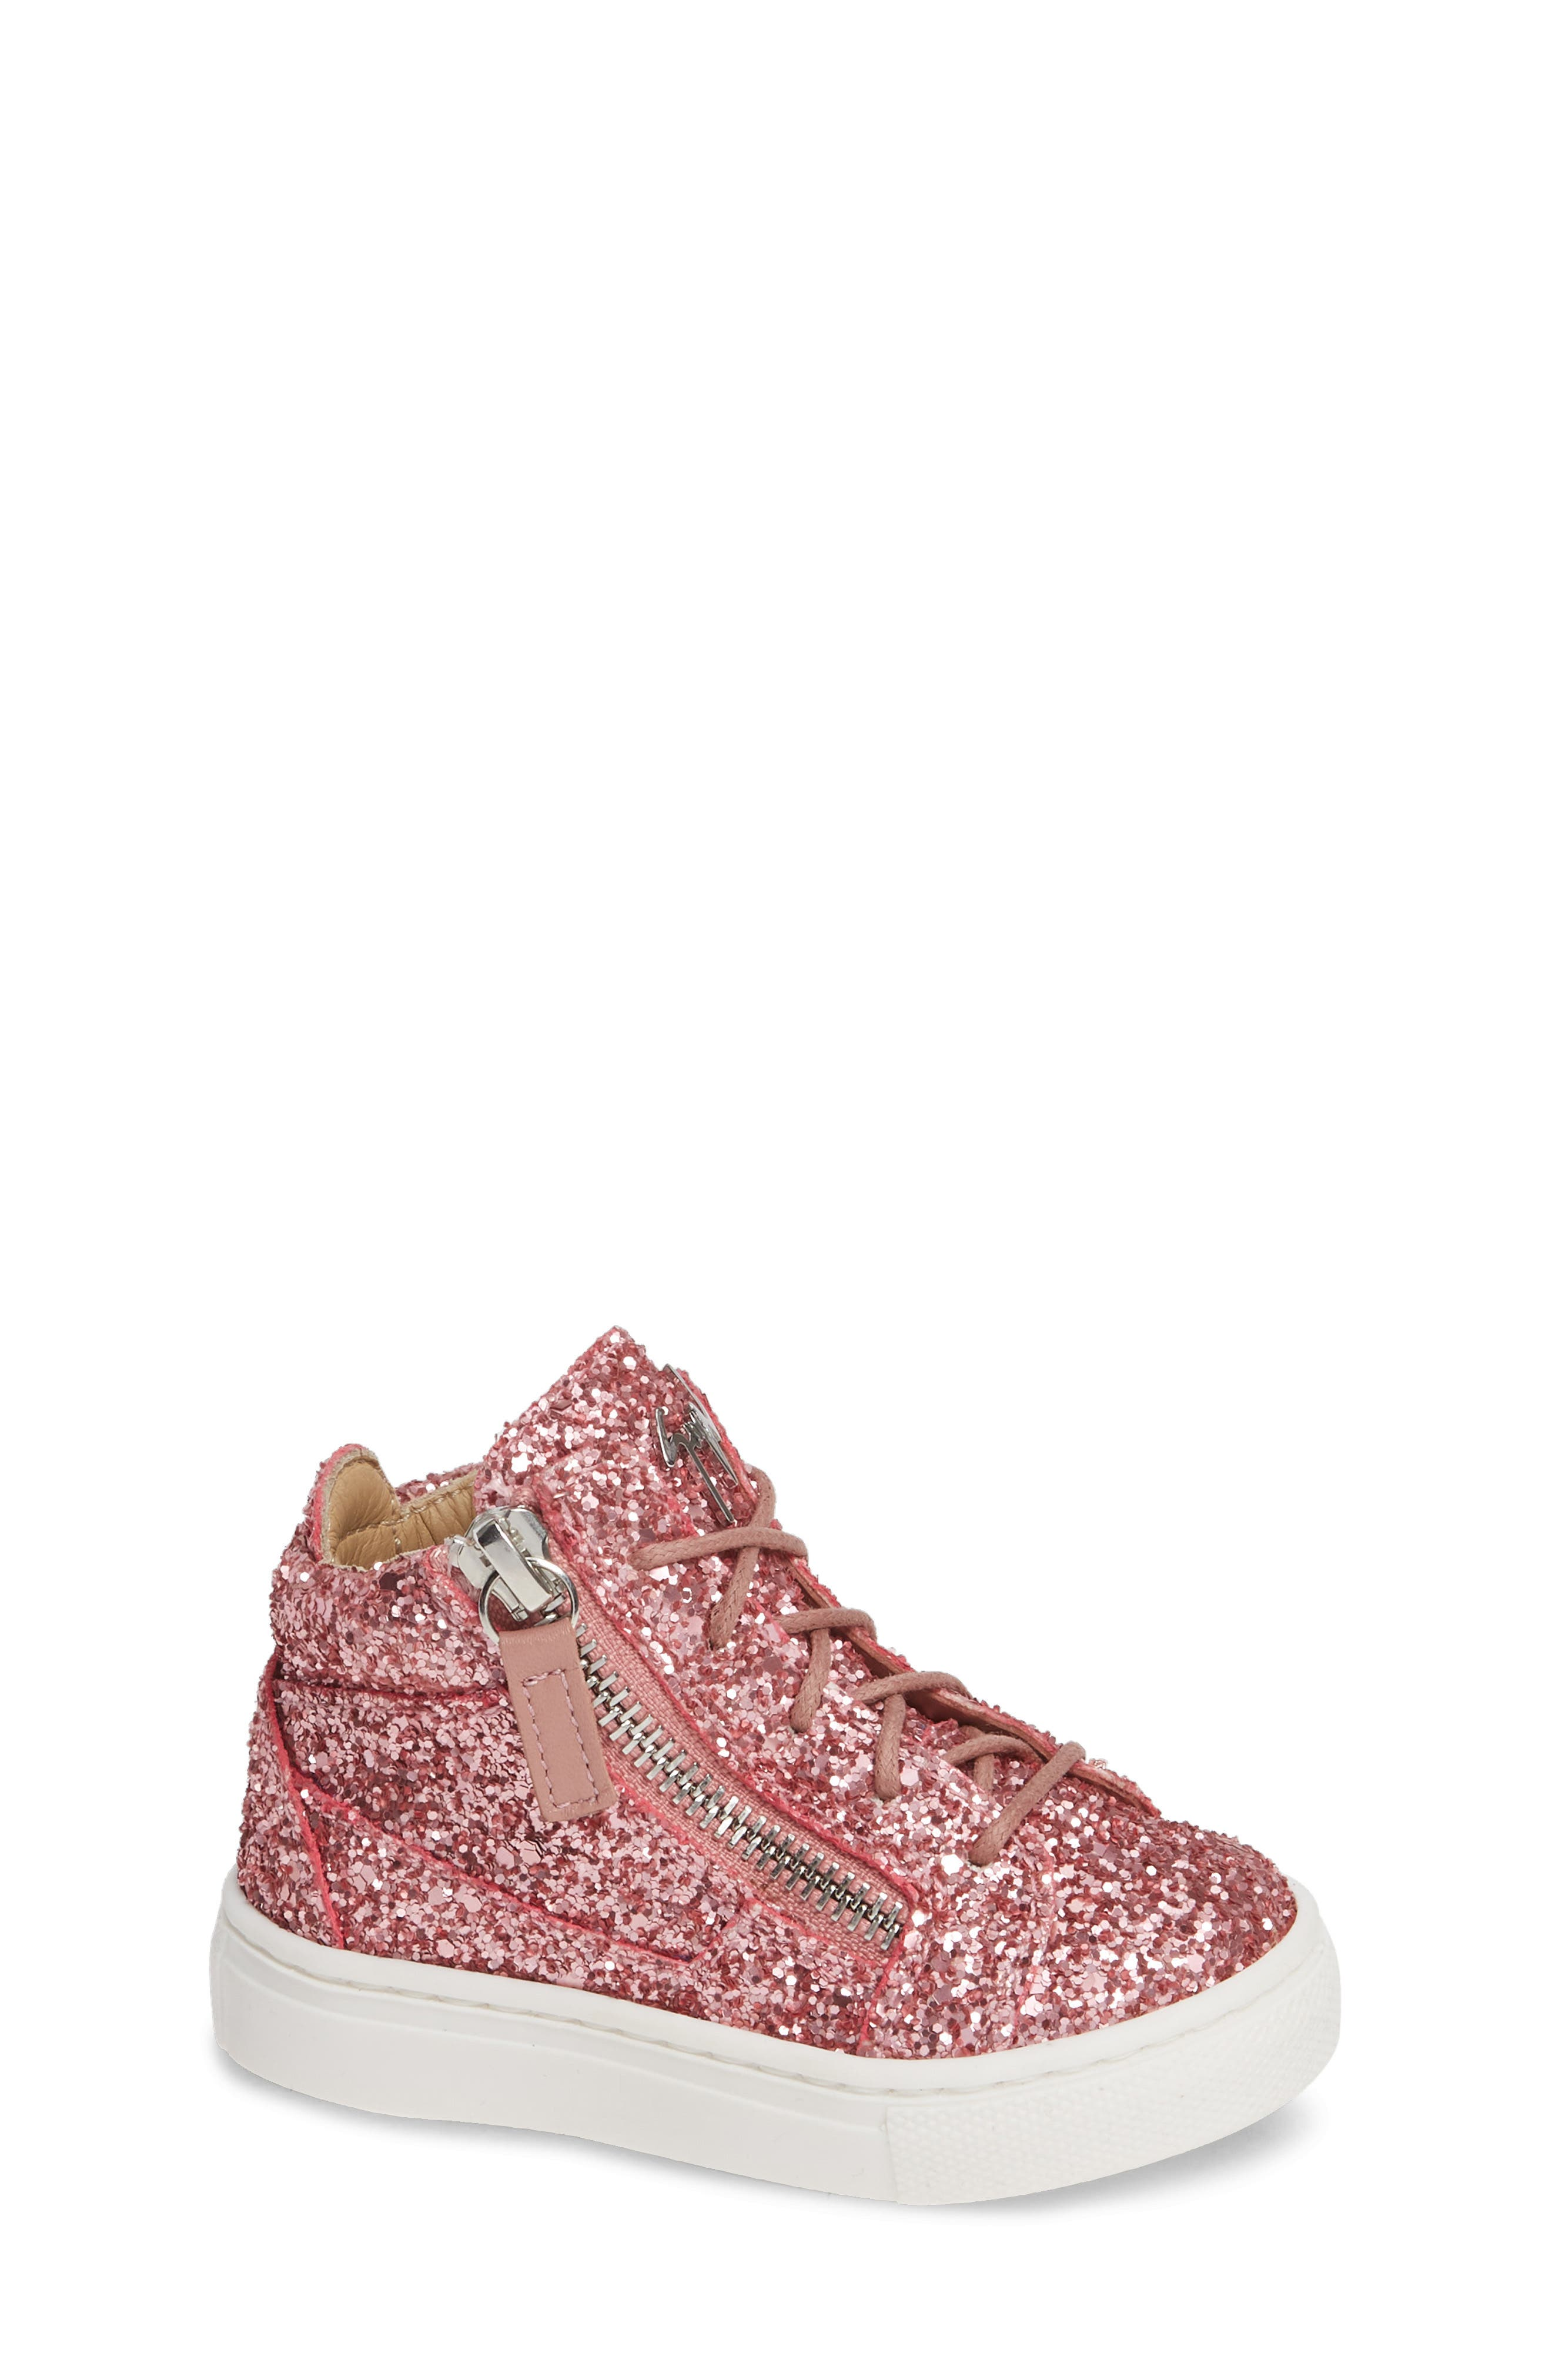 GIUSEPPE ZANOTTI Natalie High Top Sneaker, Main, color, LIPGLOSS